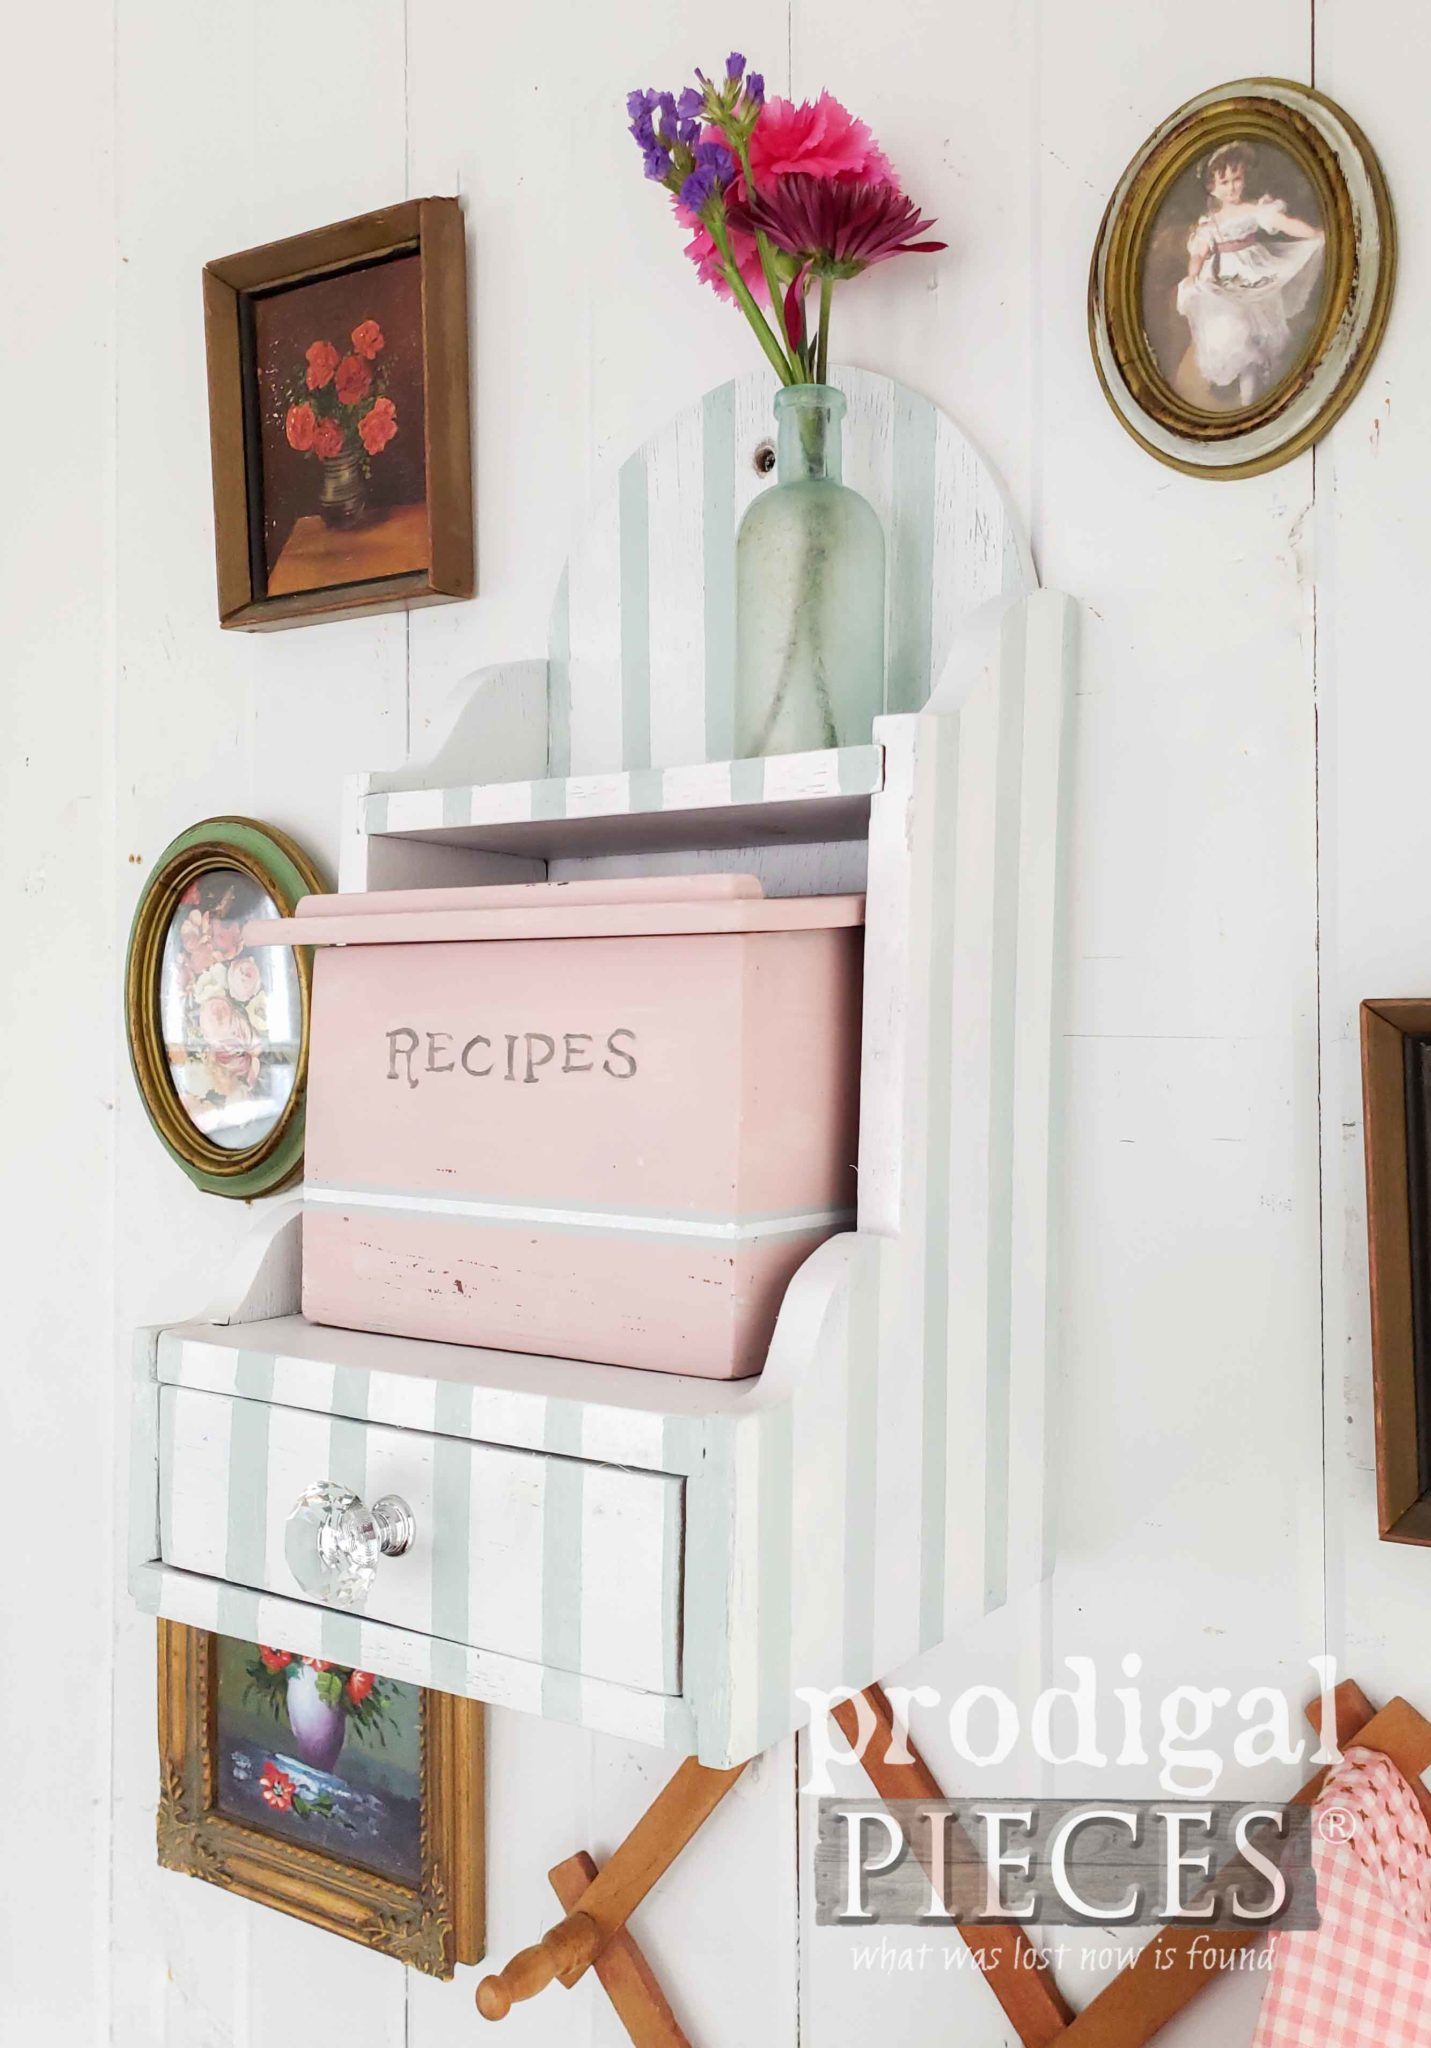 Cottage Chic Striped Recipe Box with Video Tutorial by Larissa of Prodigal Pieces | prodigalpieces.com #prodigalpieces #diy #vintage #home #videos #homedecor